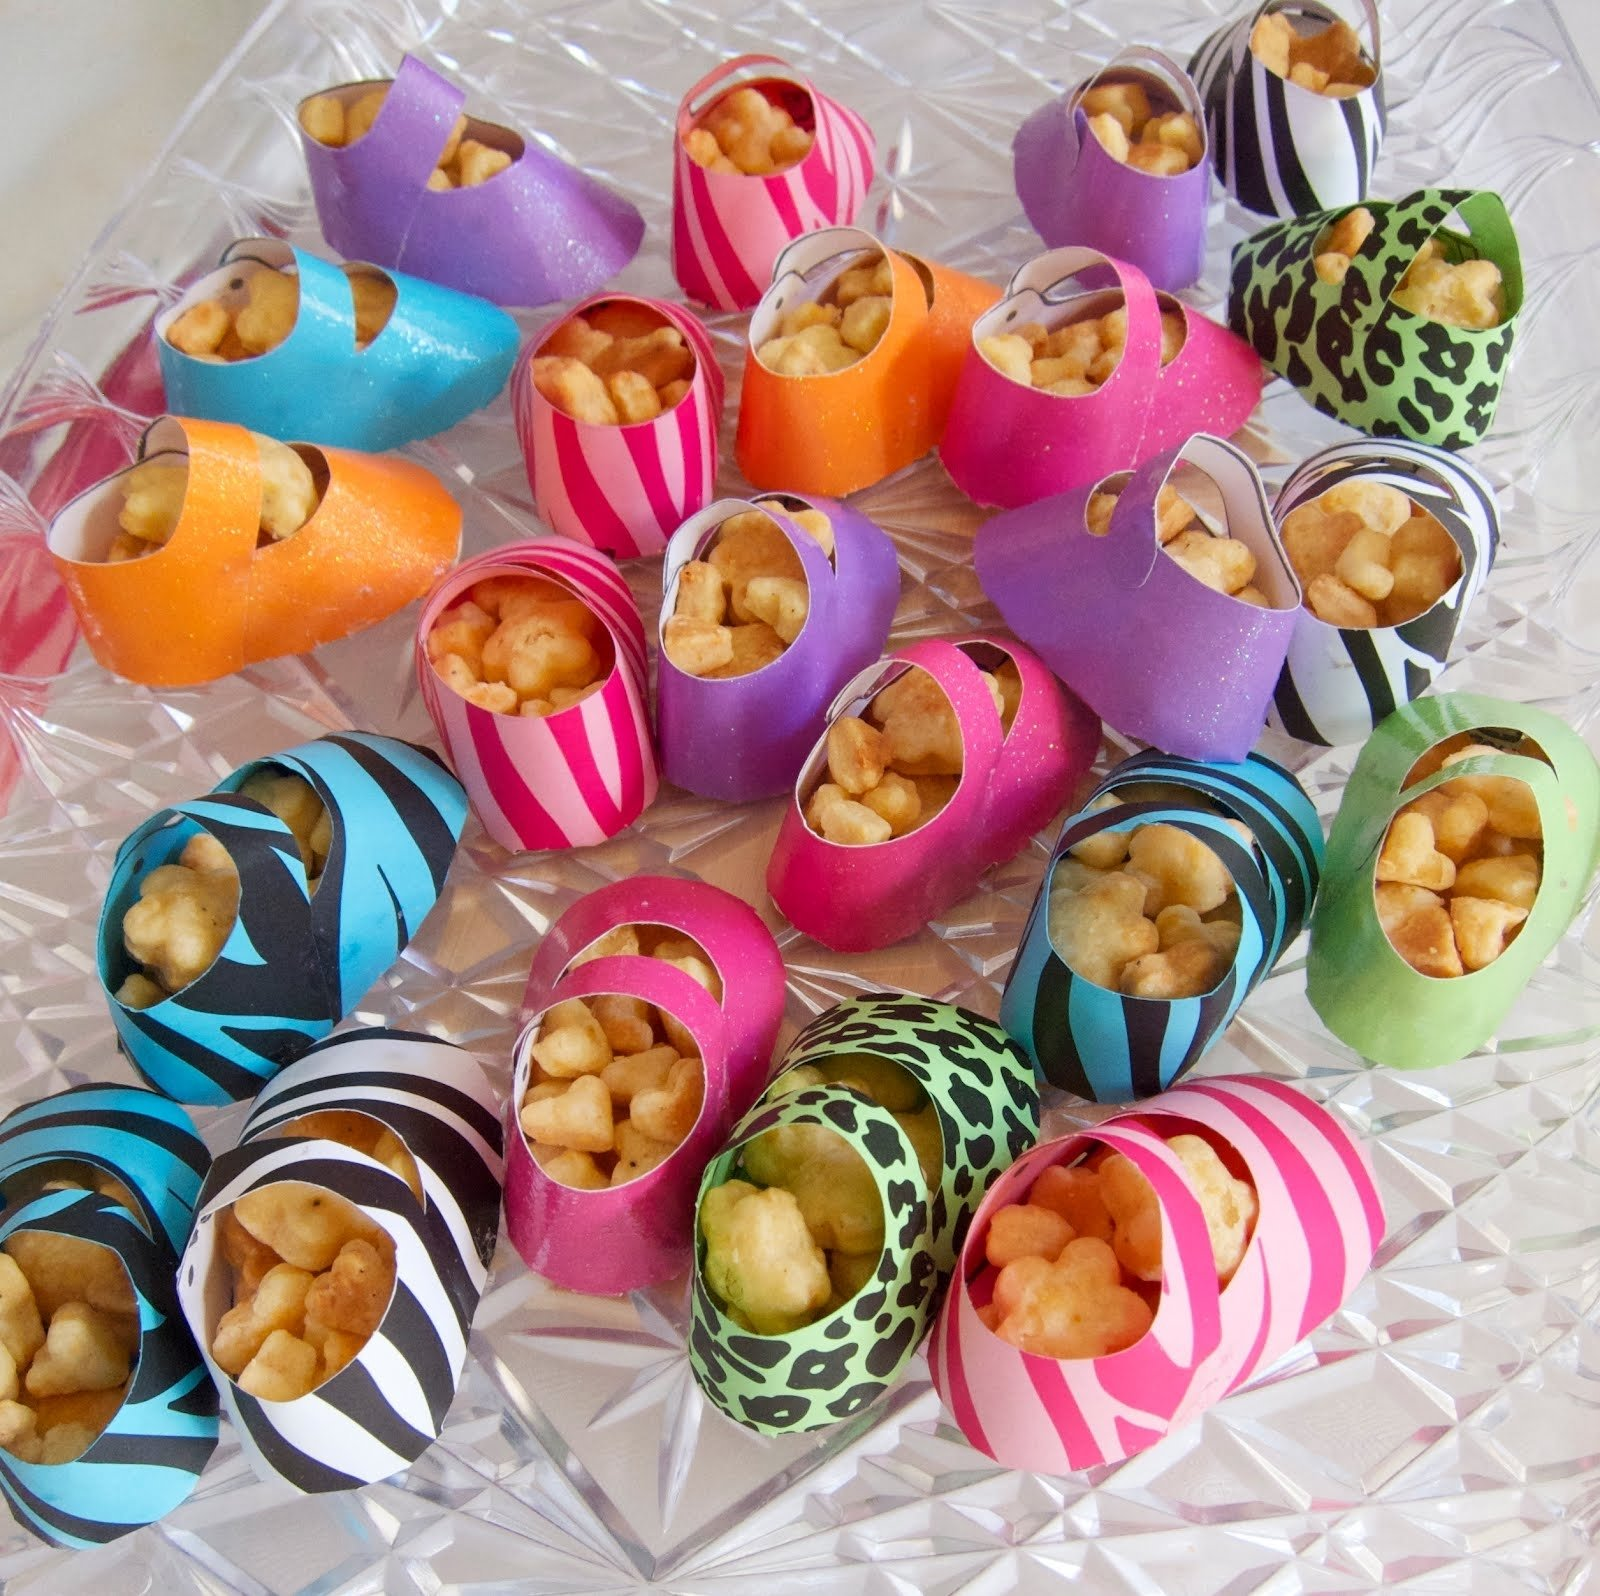 10 Unique Baby Shower Food Ideas For A Girl girl baby shower food ideas wedding 1 2021